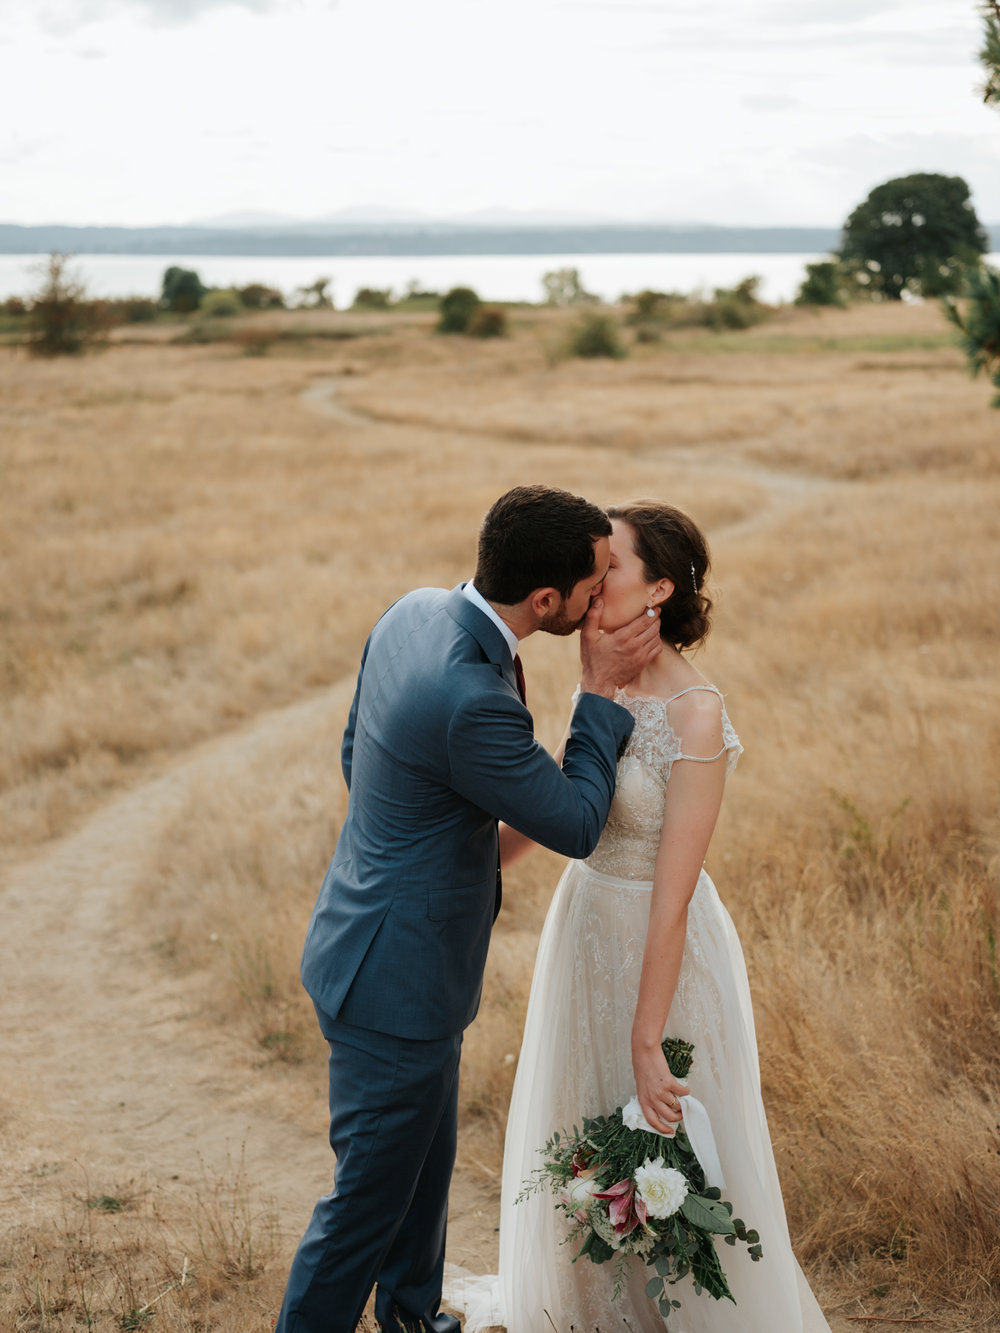 Stolen Glimpses Seattle Wedding Photographer at Discovery Park53.jpg